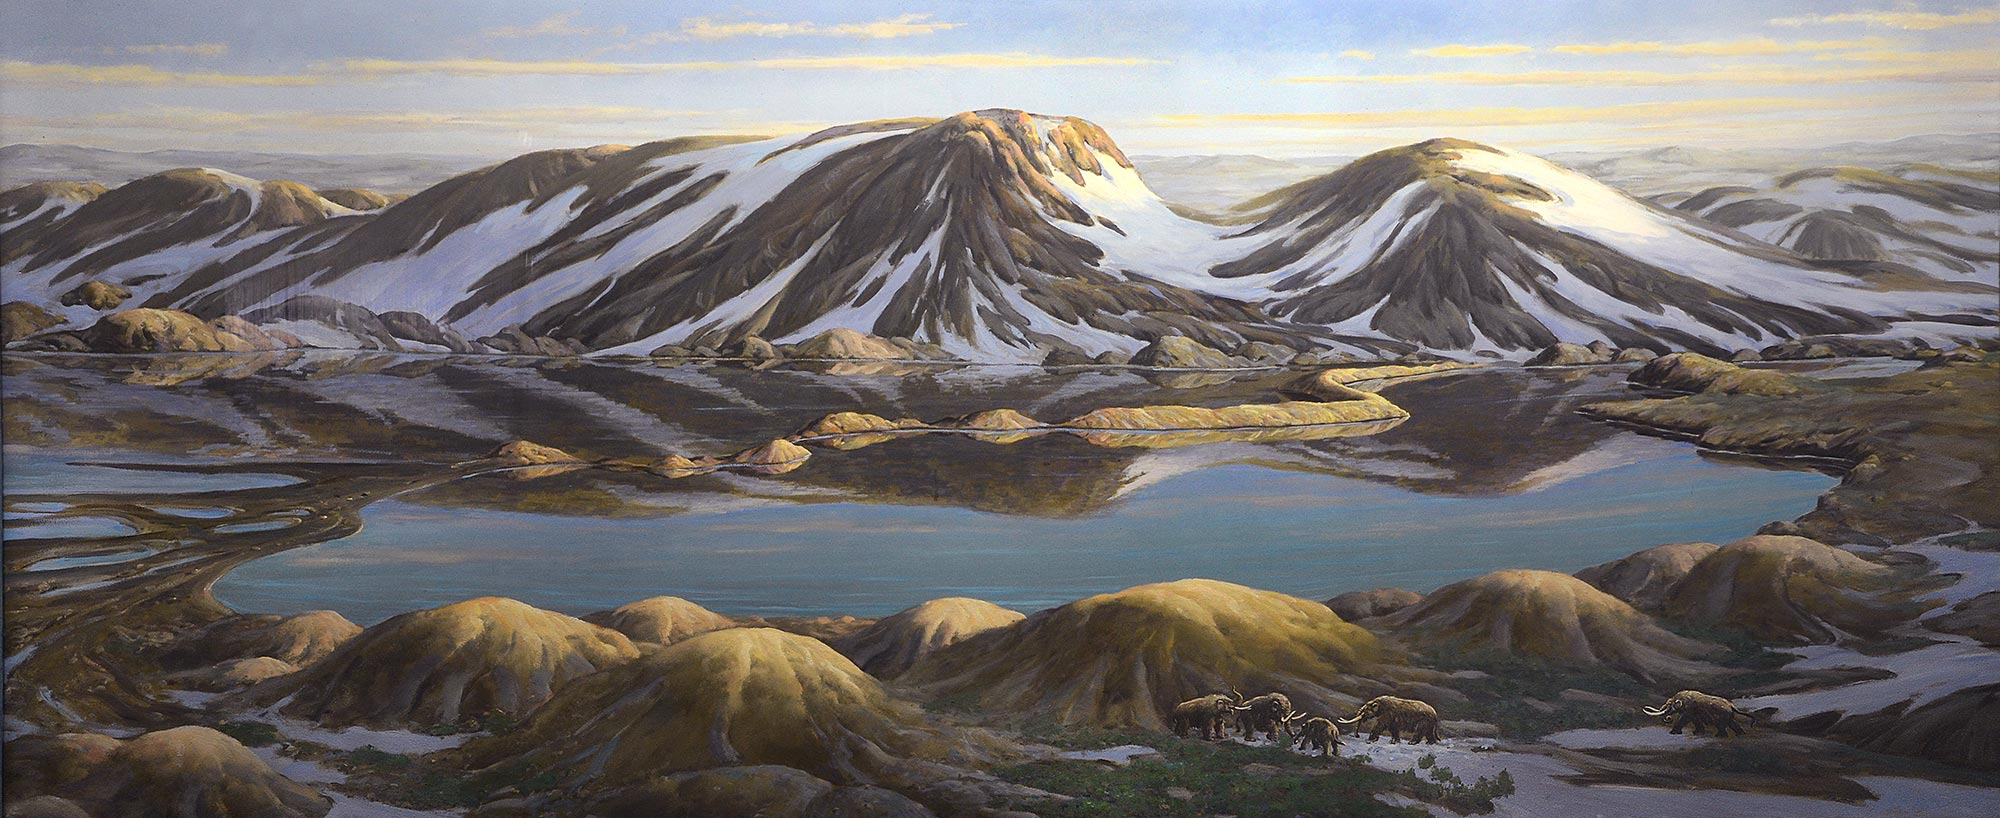 Painting of snowed mountains with lakes and a group of mammuts